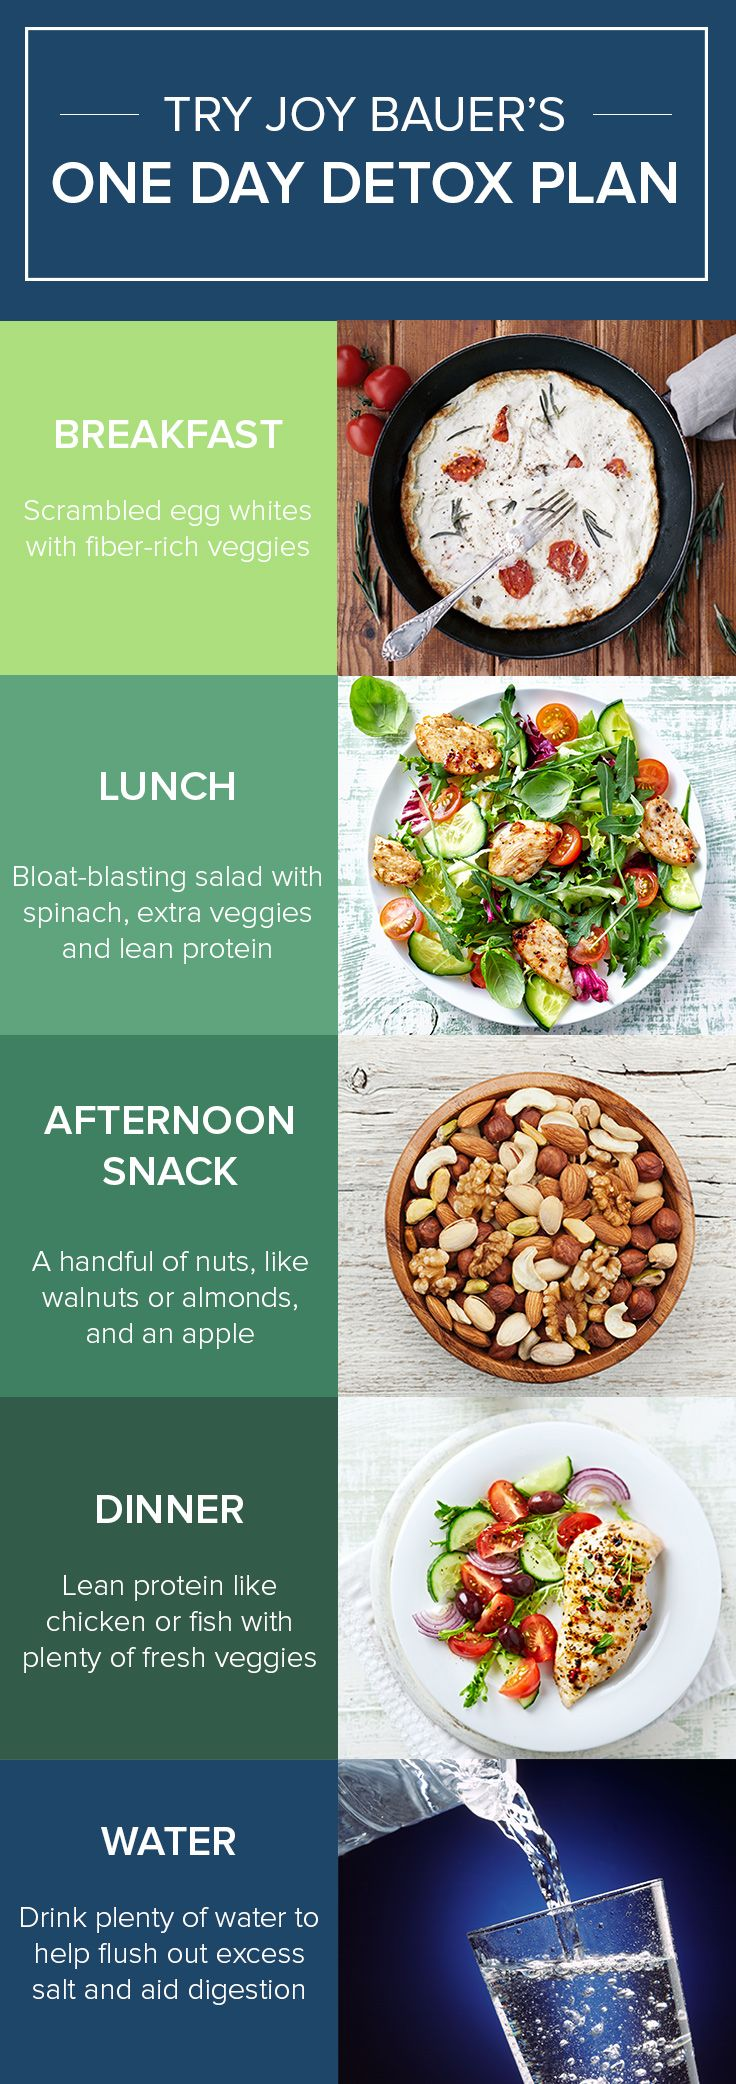 one food diet for one day